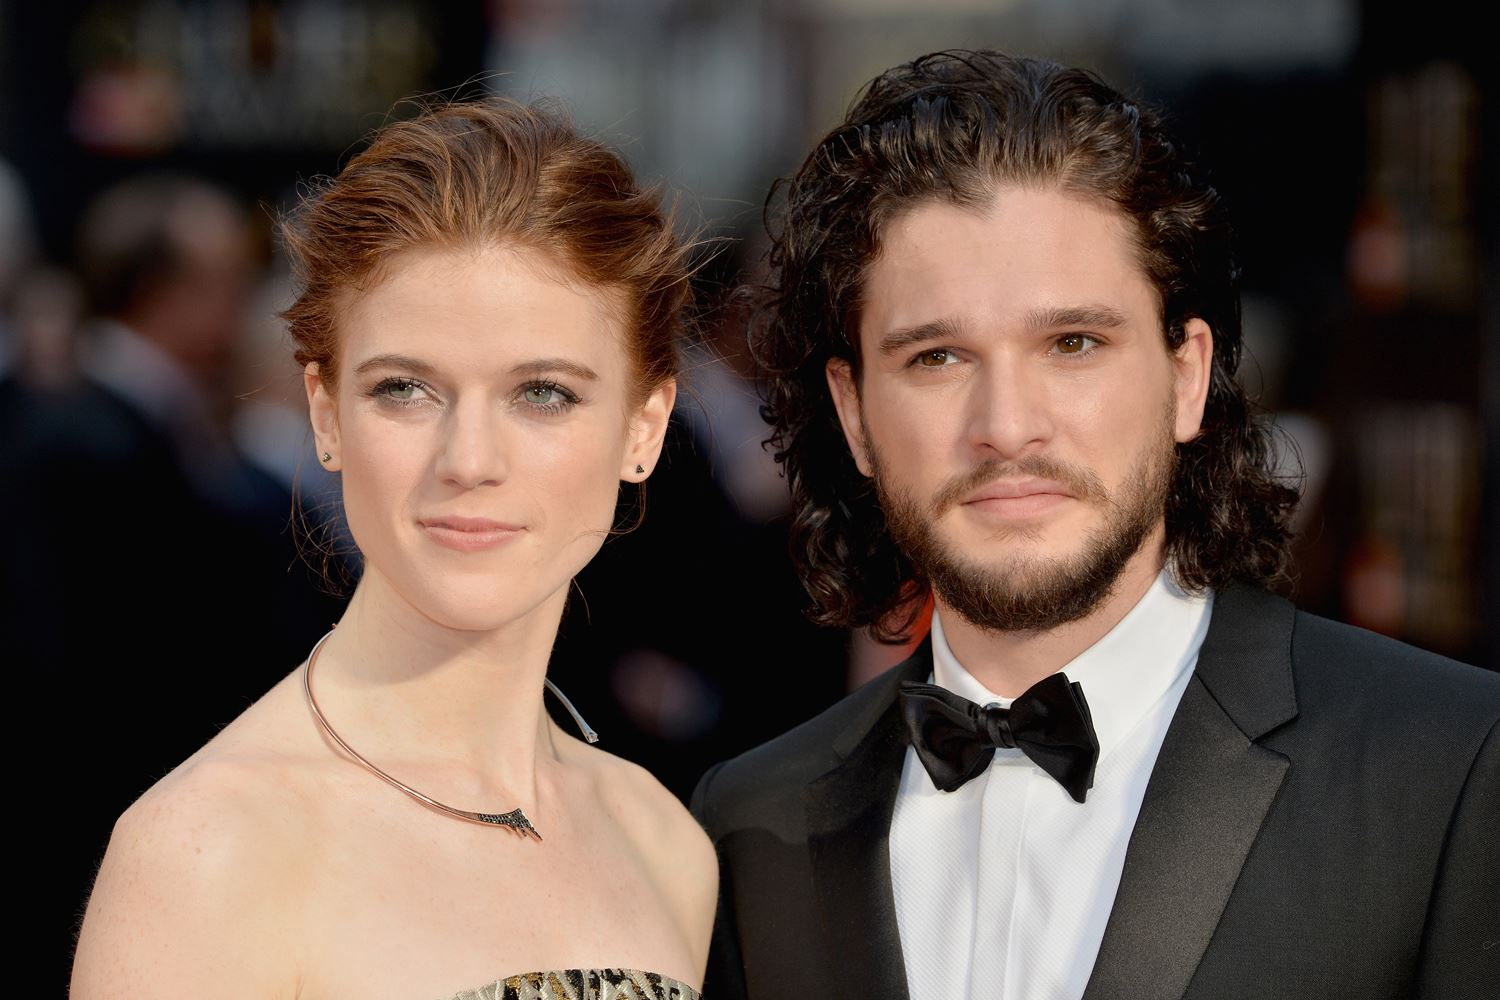 Esta broma pesada casi le cuesta su boda a este actor de Game Of Thrones